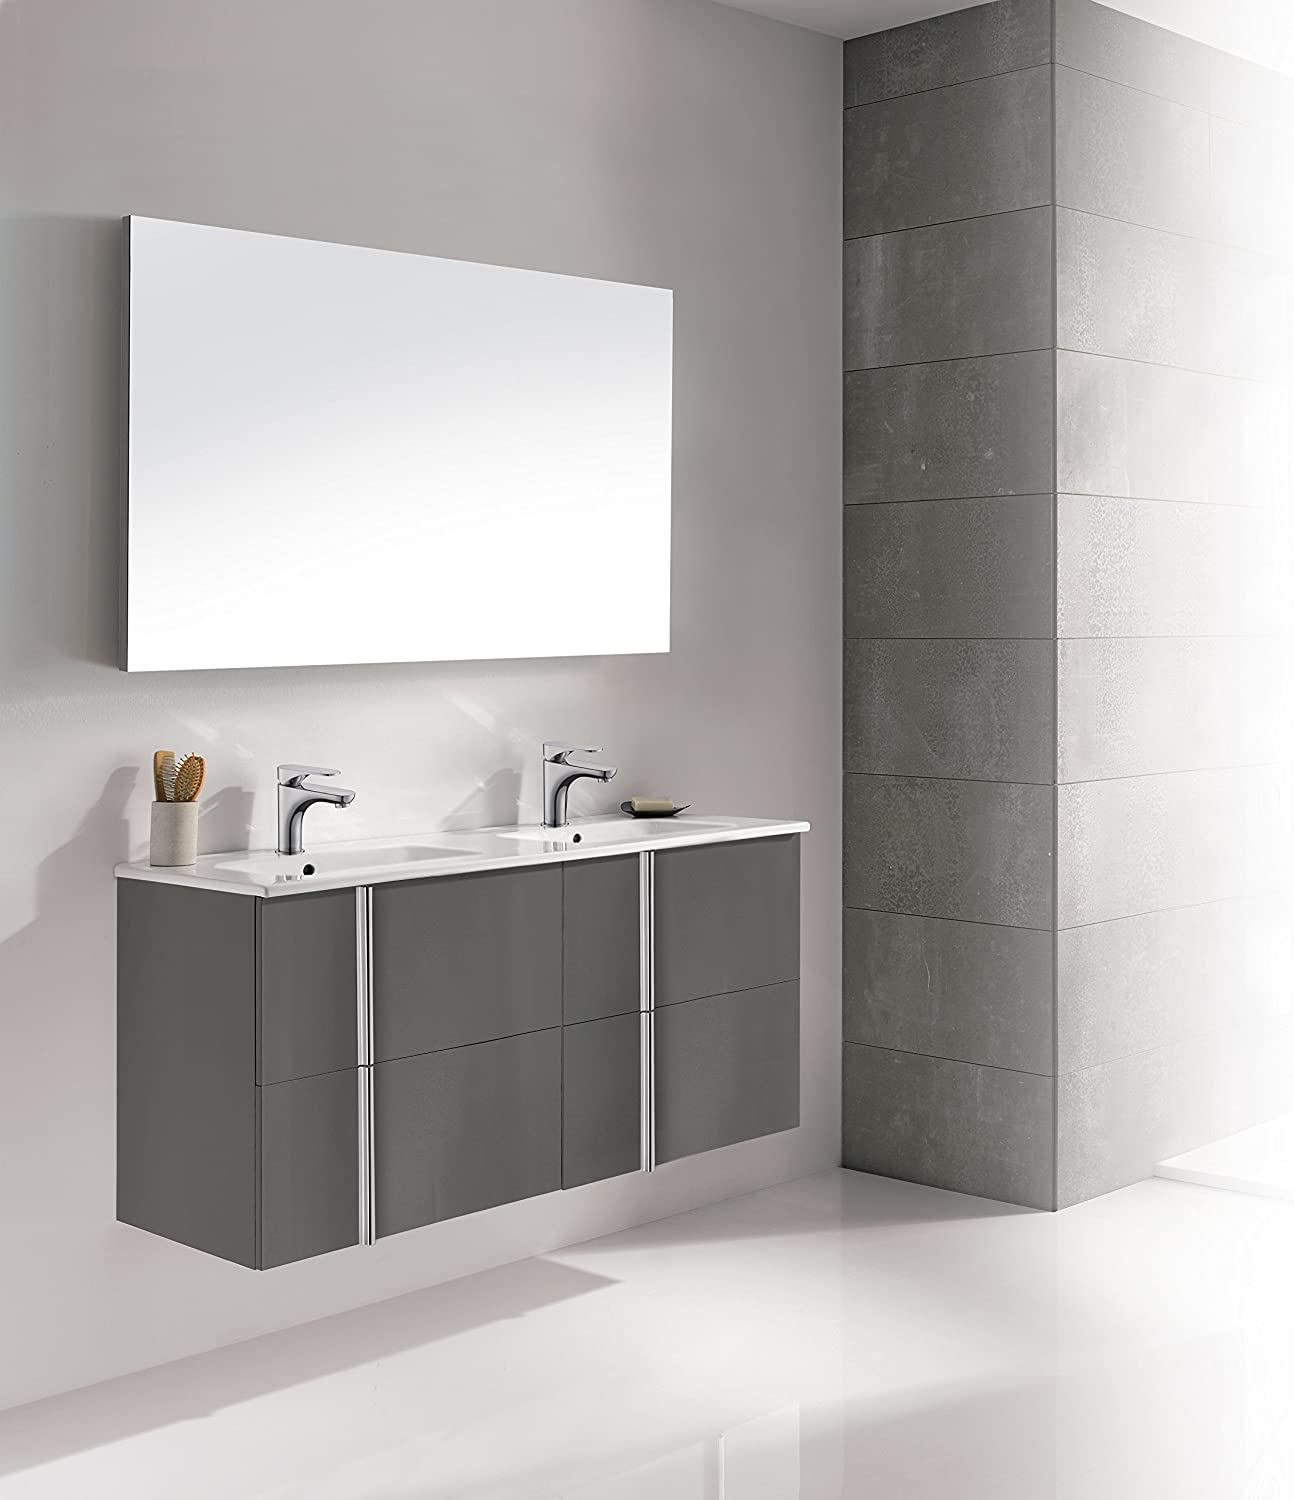 Dawn Onix Series Anthracite Vanity Set Onix 4807 Cabinets Onic124609 07 One Countertop Rcst124626 Two Mirror Romm124621 48 Inches Amazon Co Uk Kitchen Home